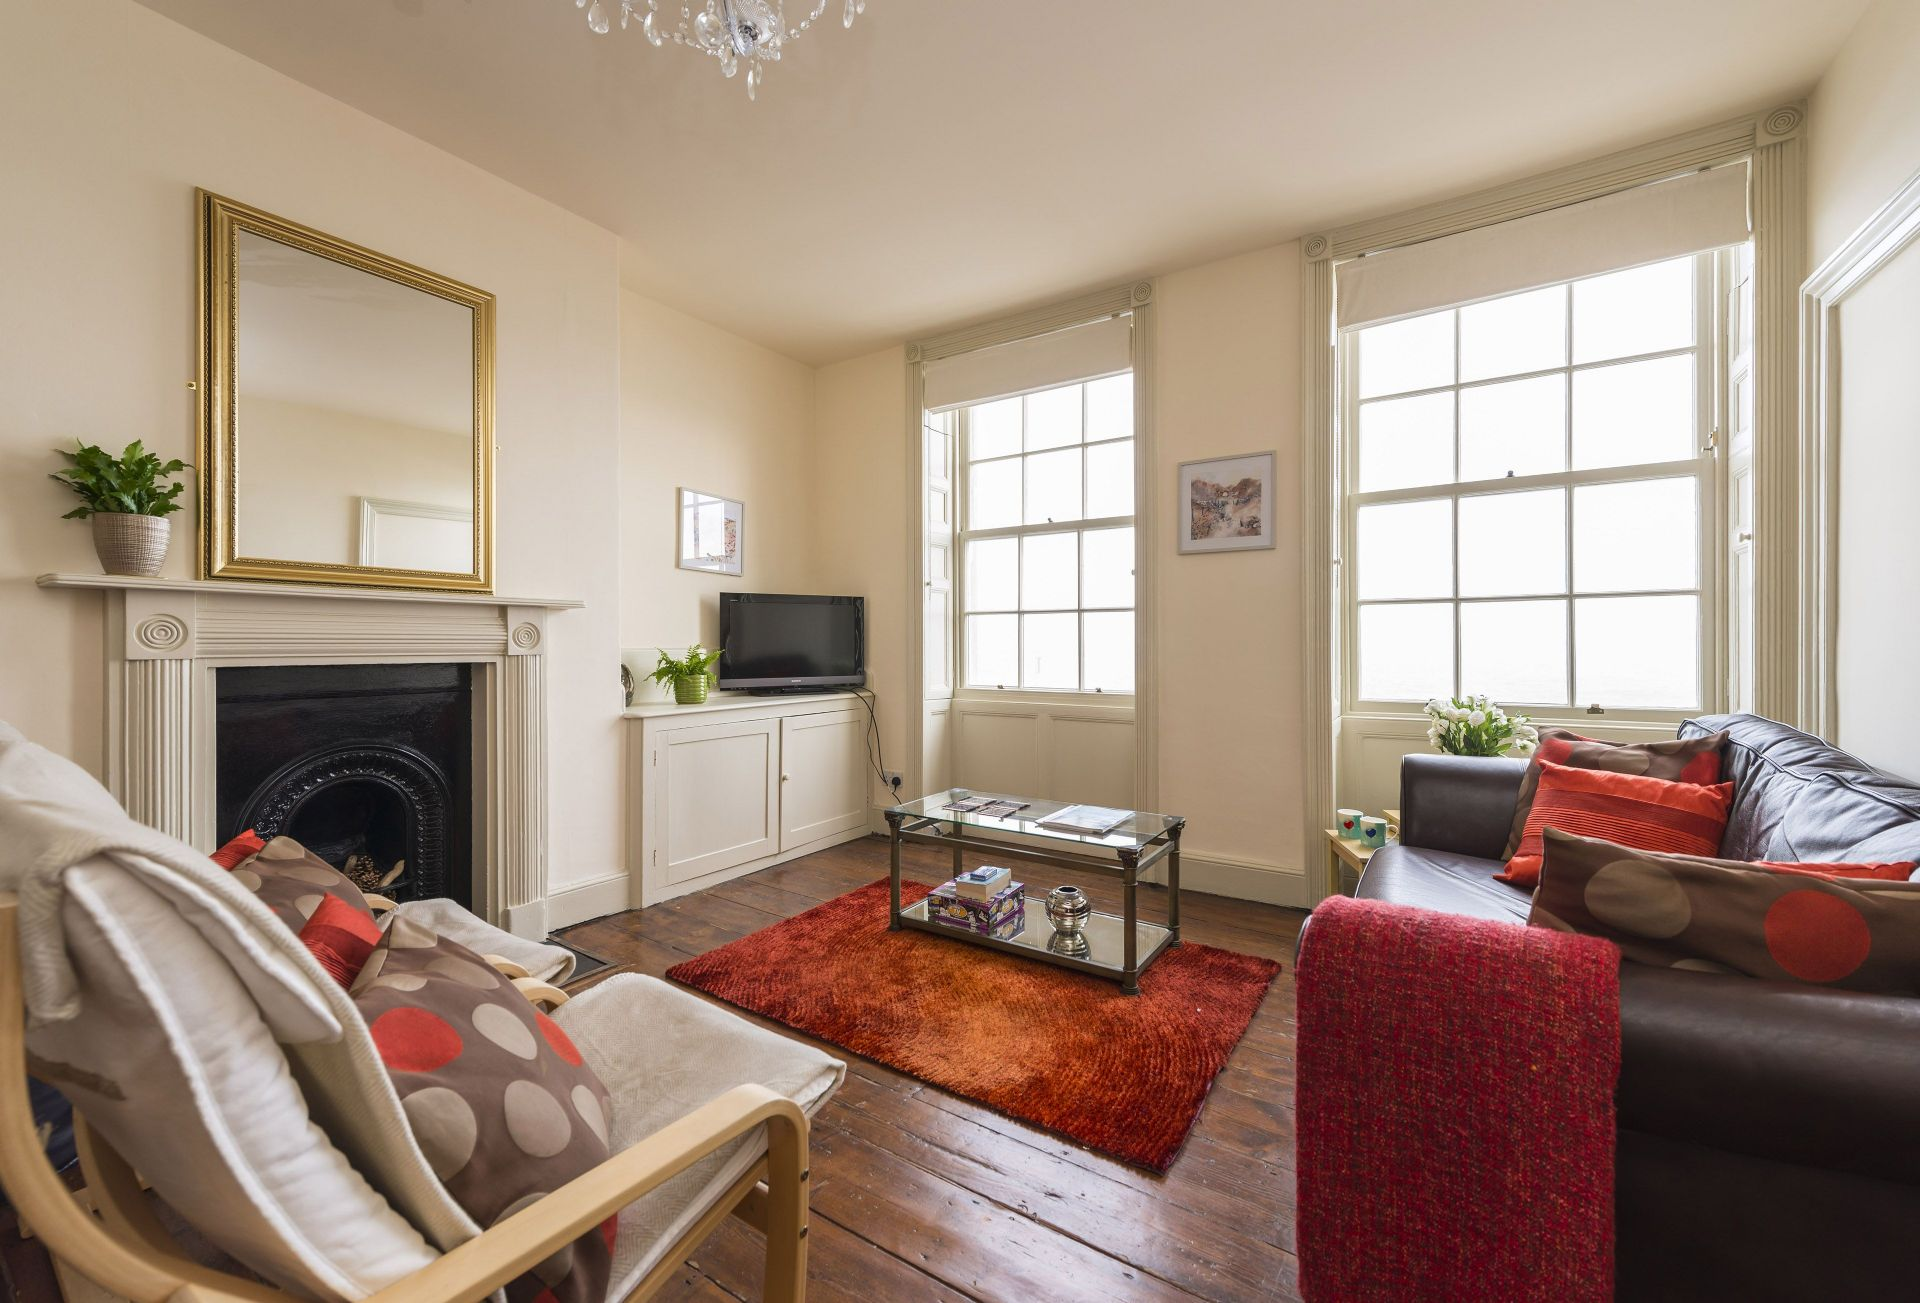 Details about a cottage Holiday at Belvidere 4